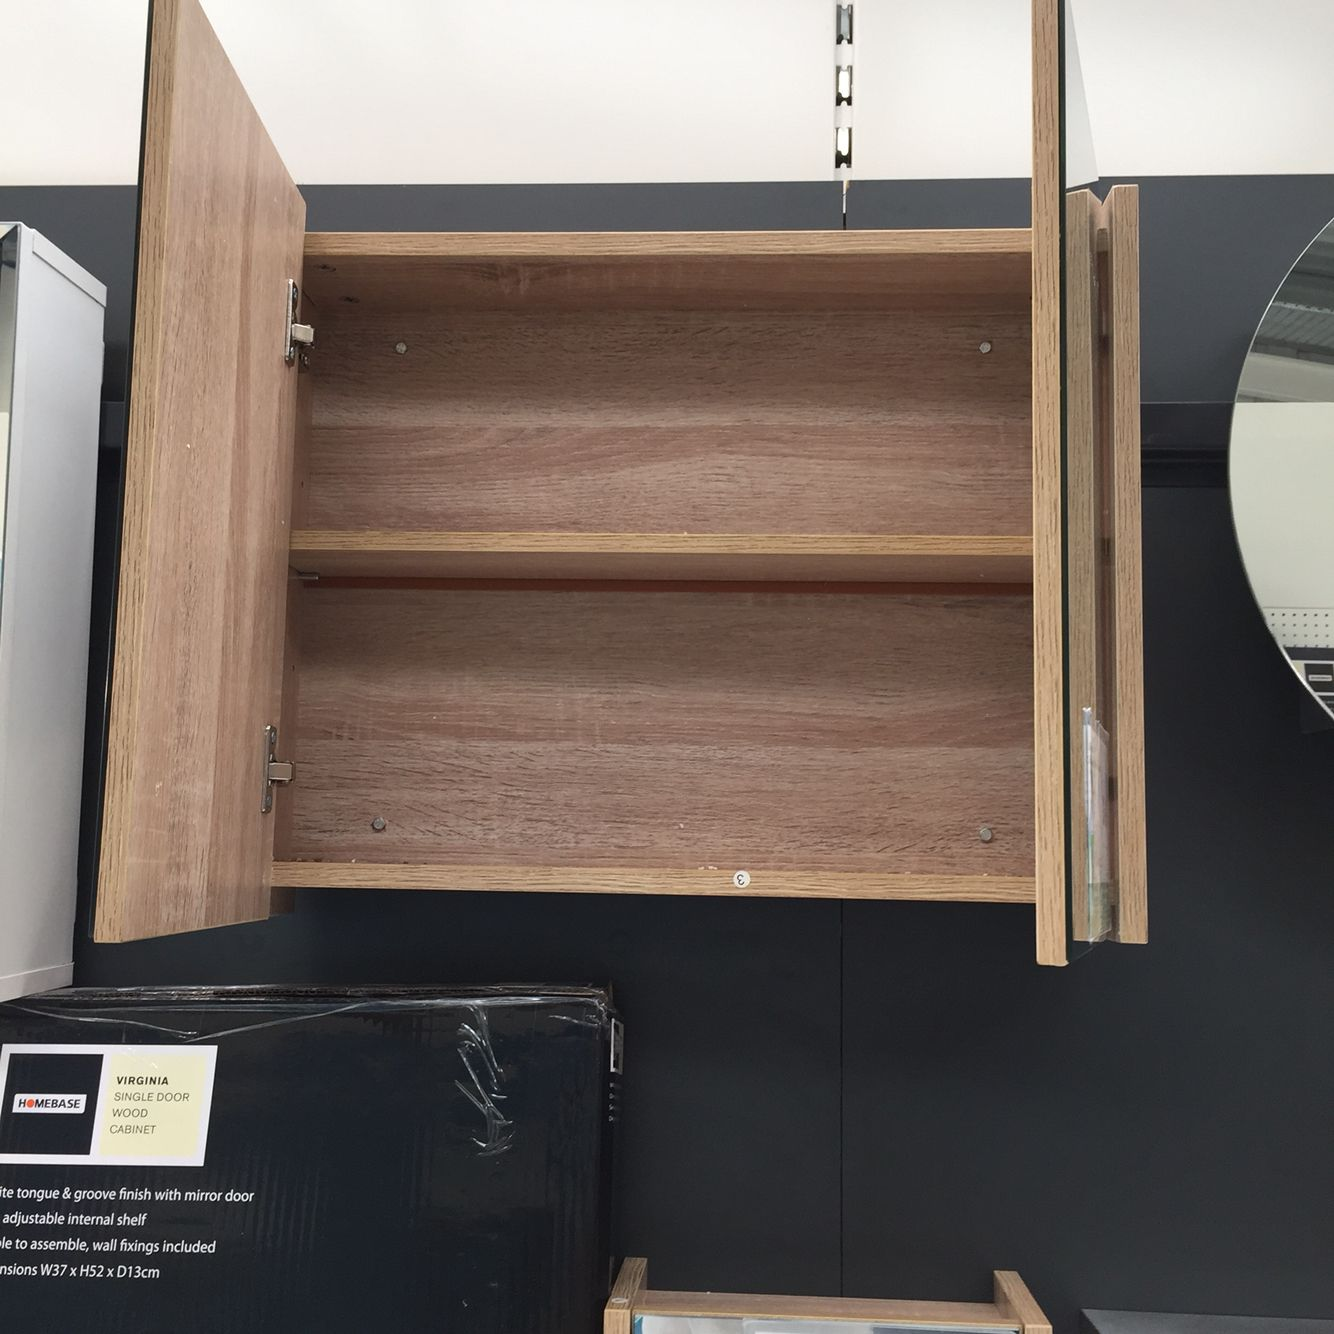 Inside the home base mirrored cabinet